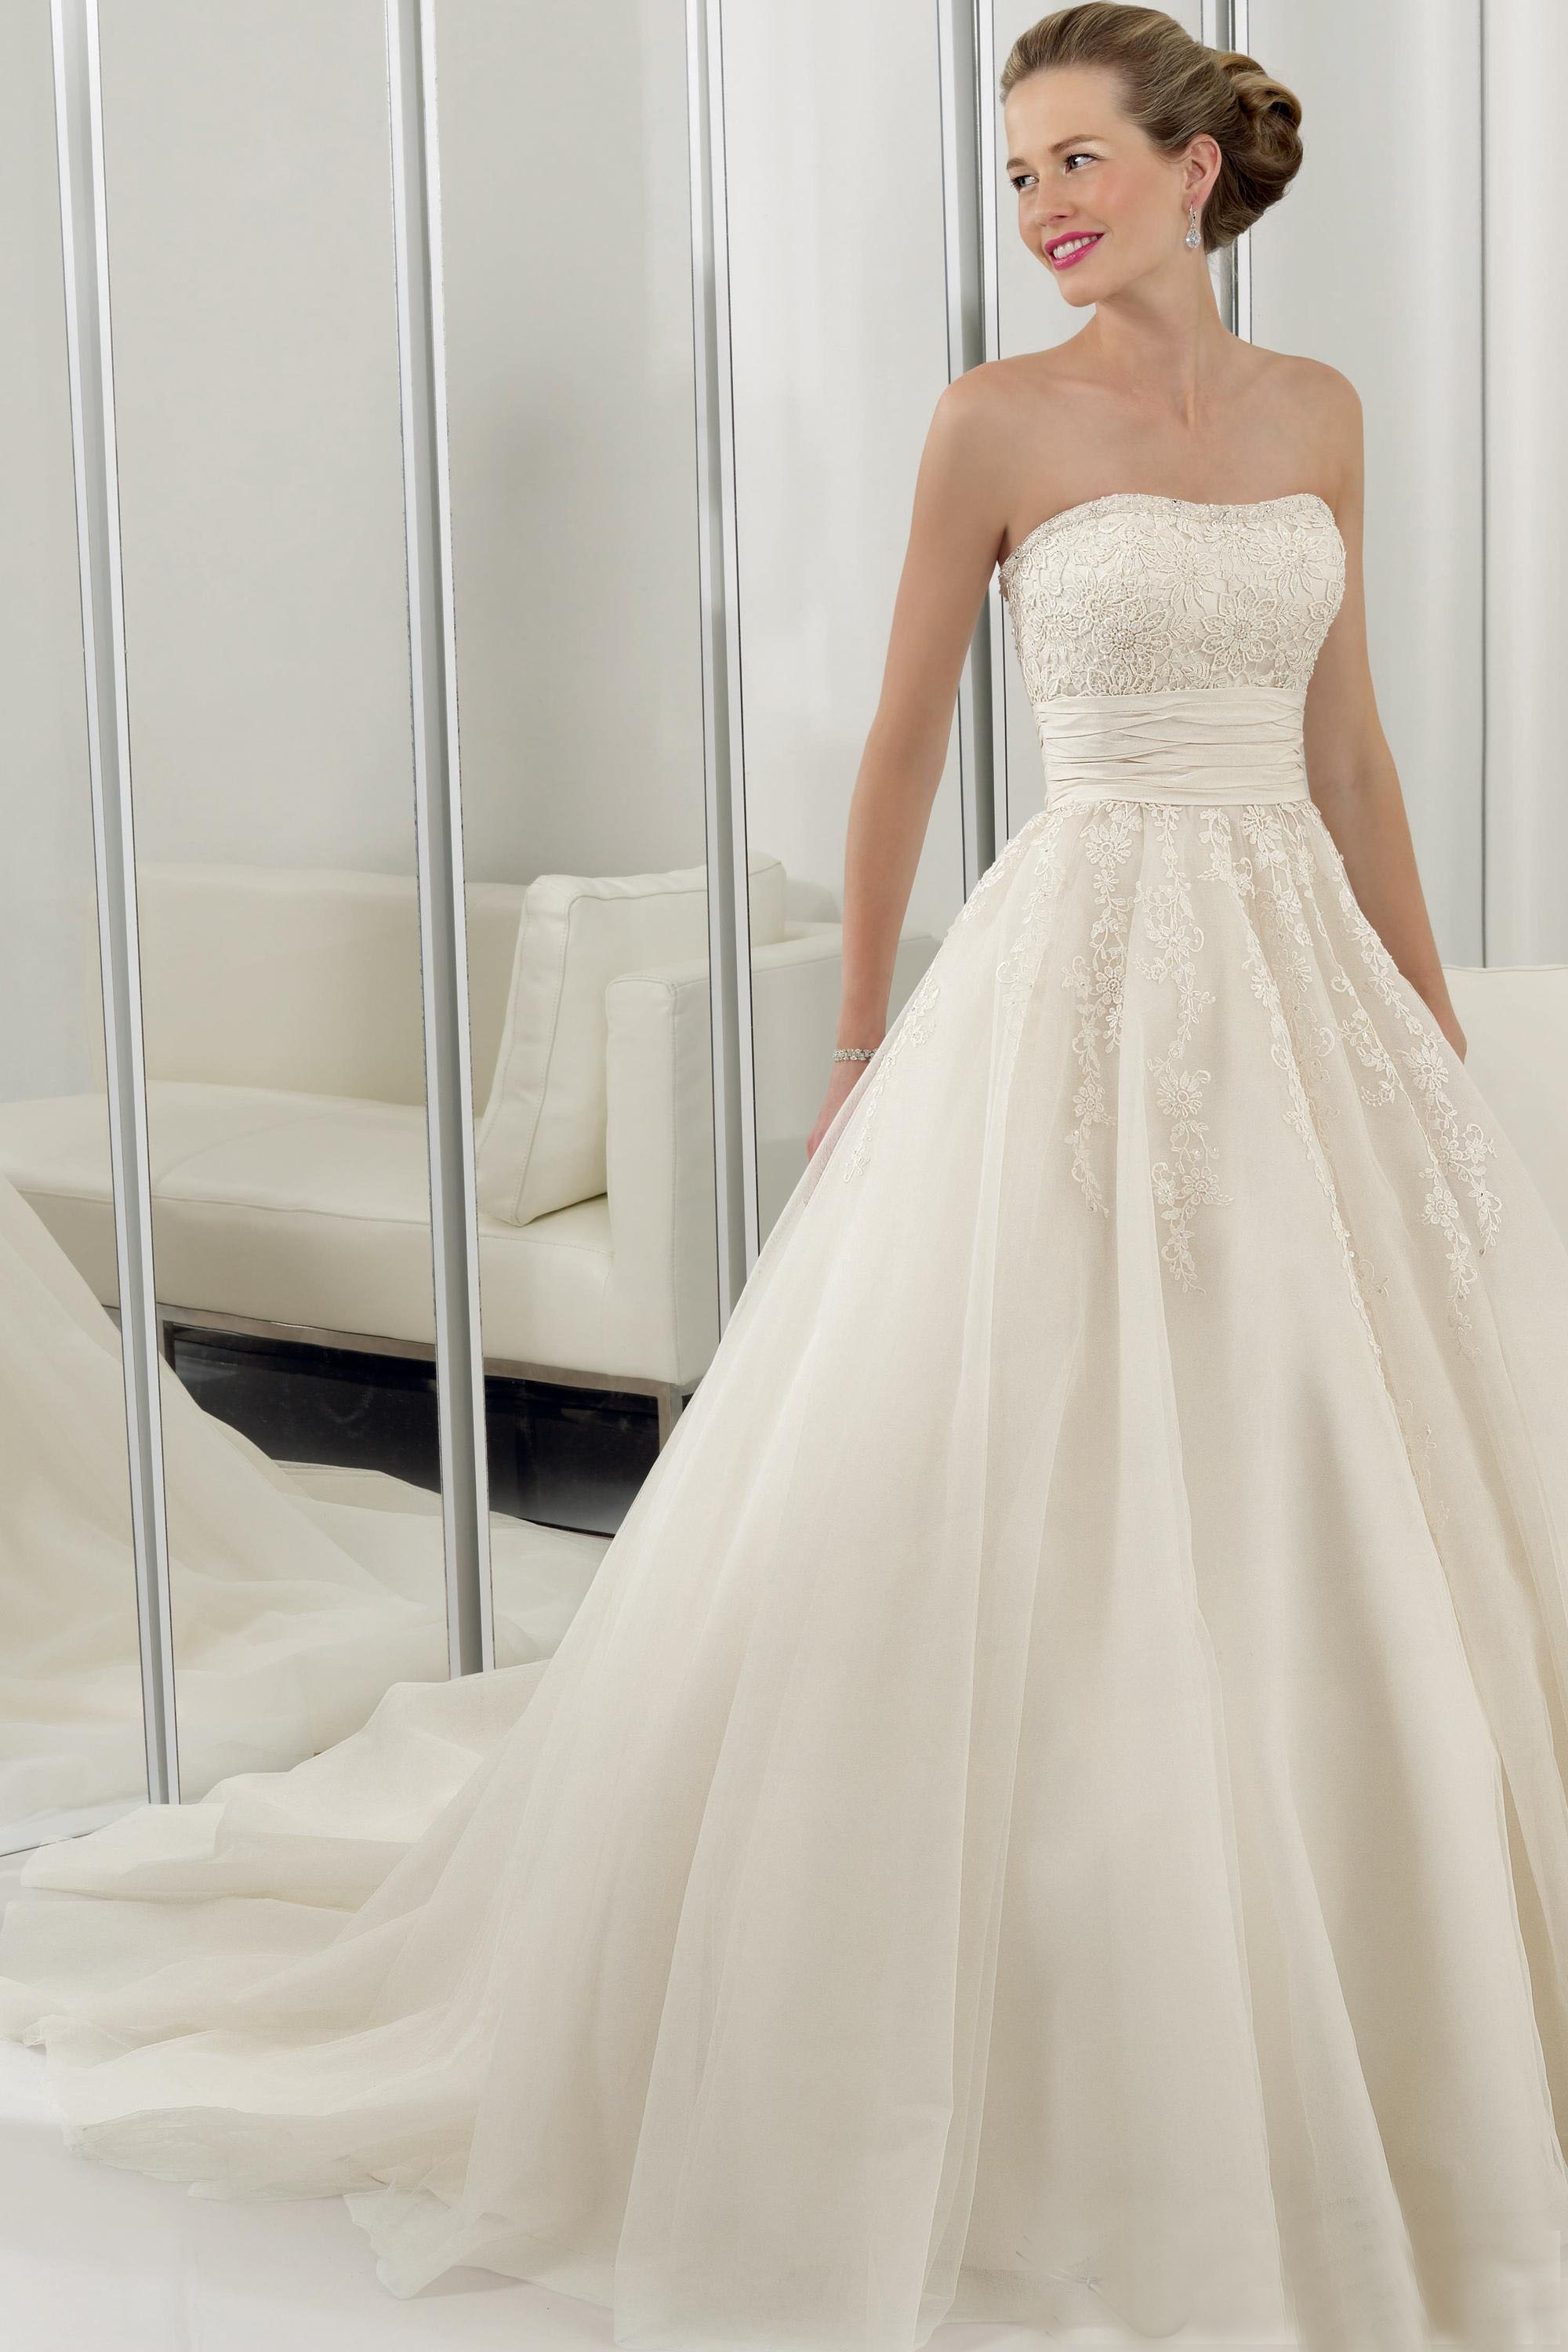 simple organza wedding dresses for simple but very elegant